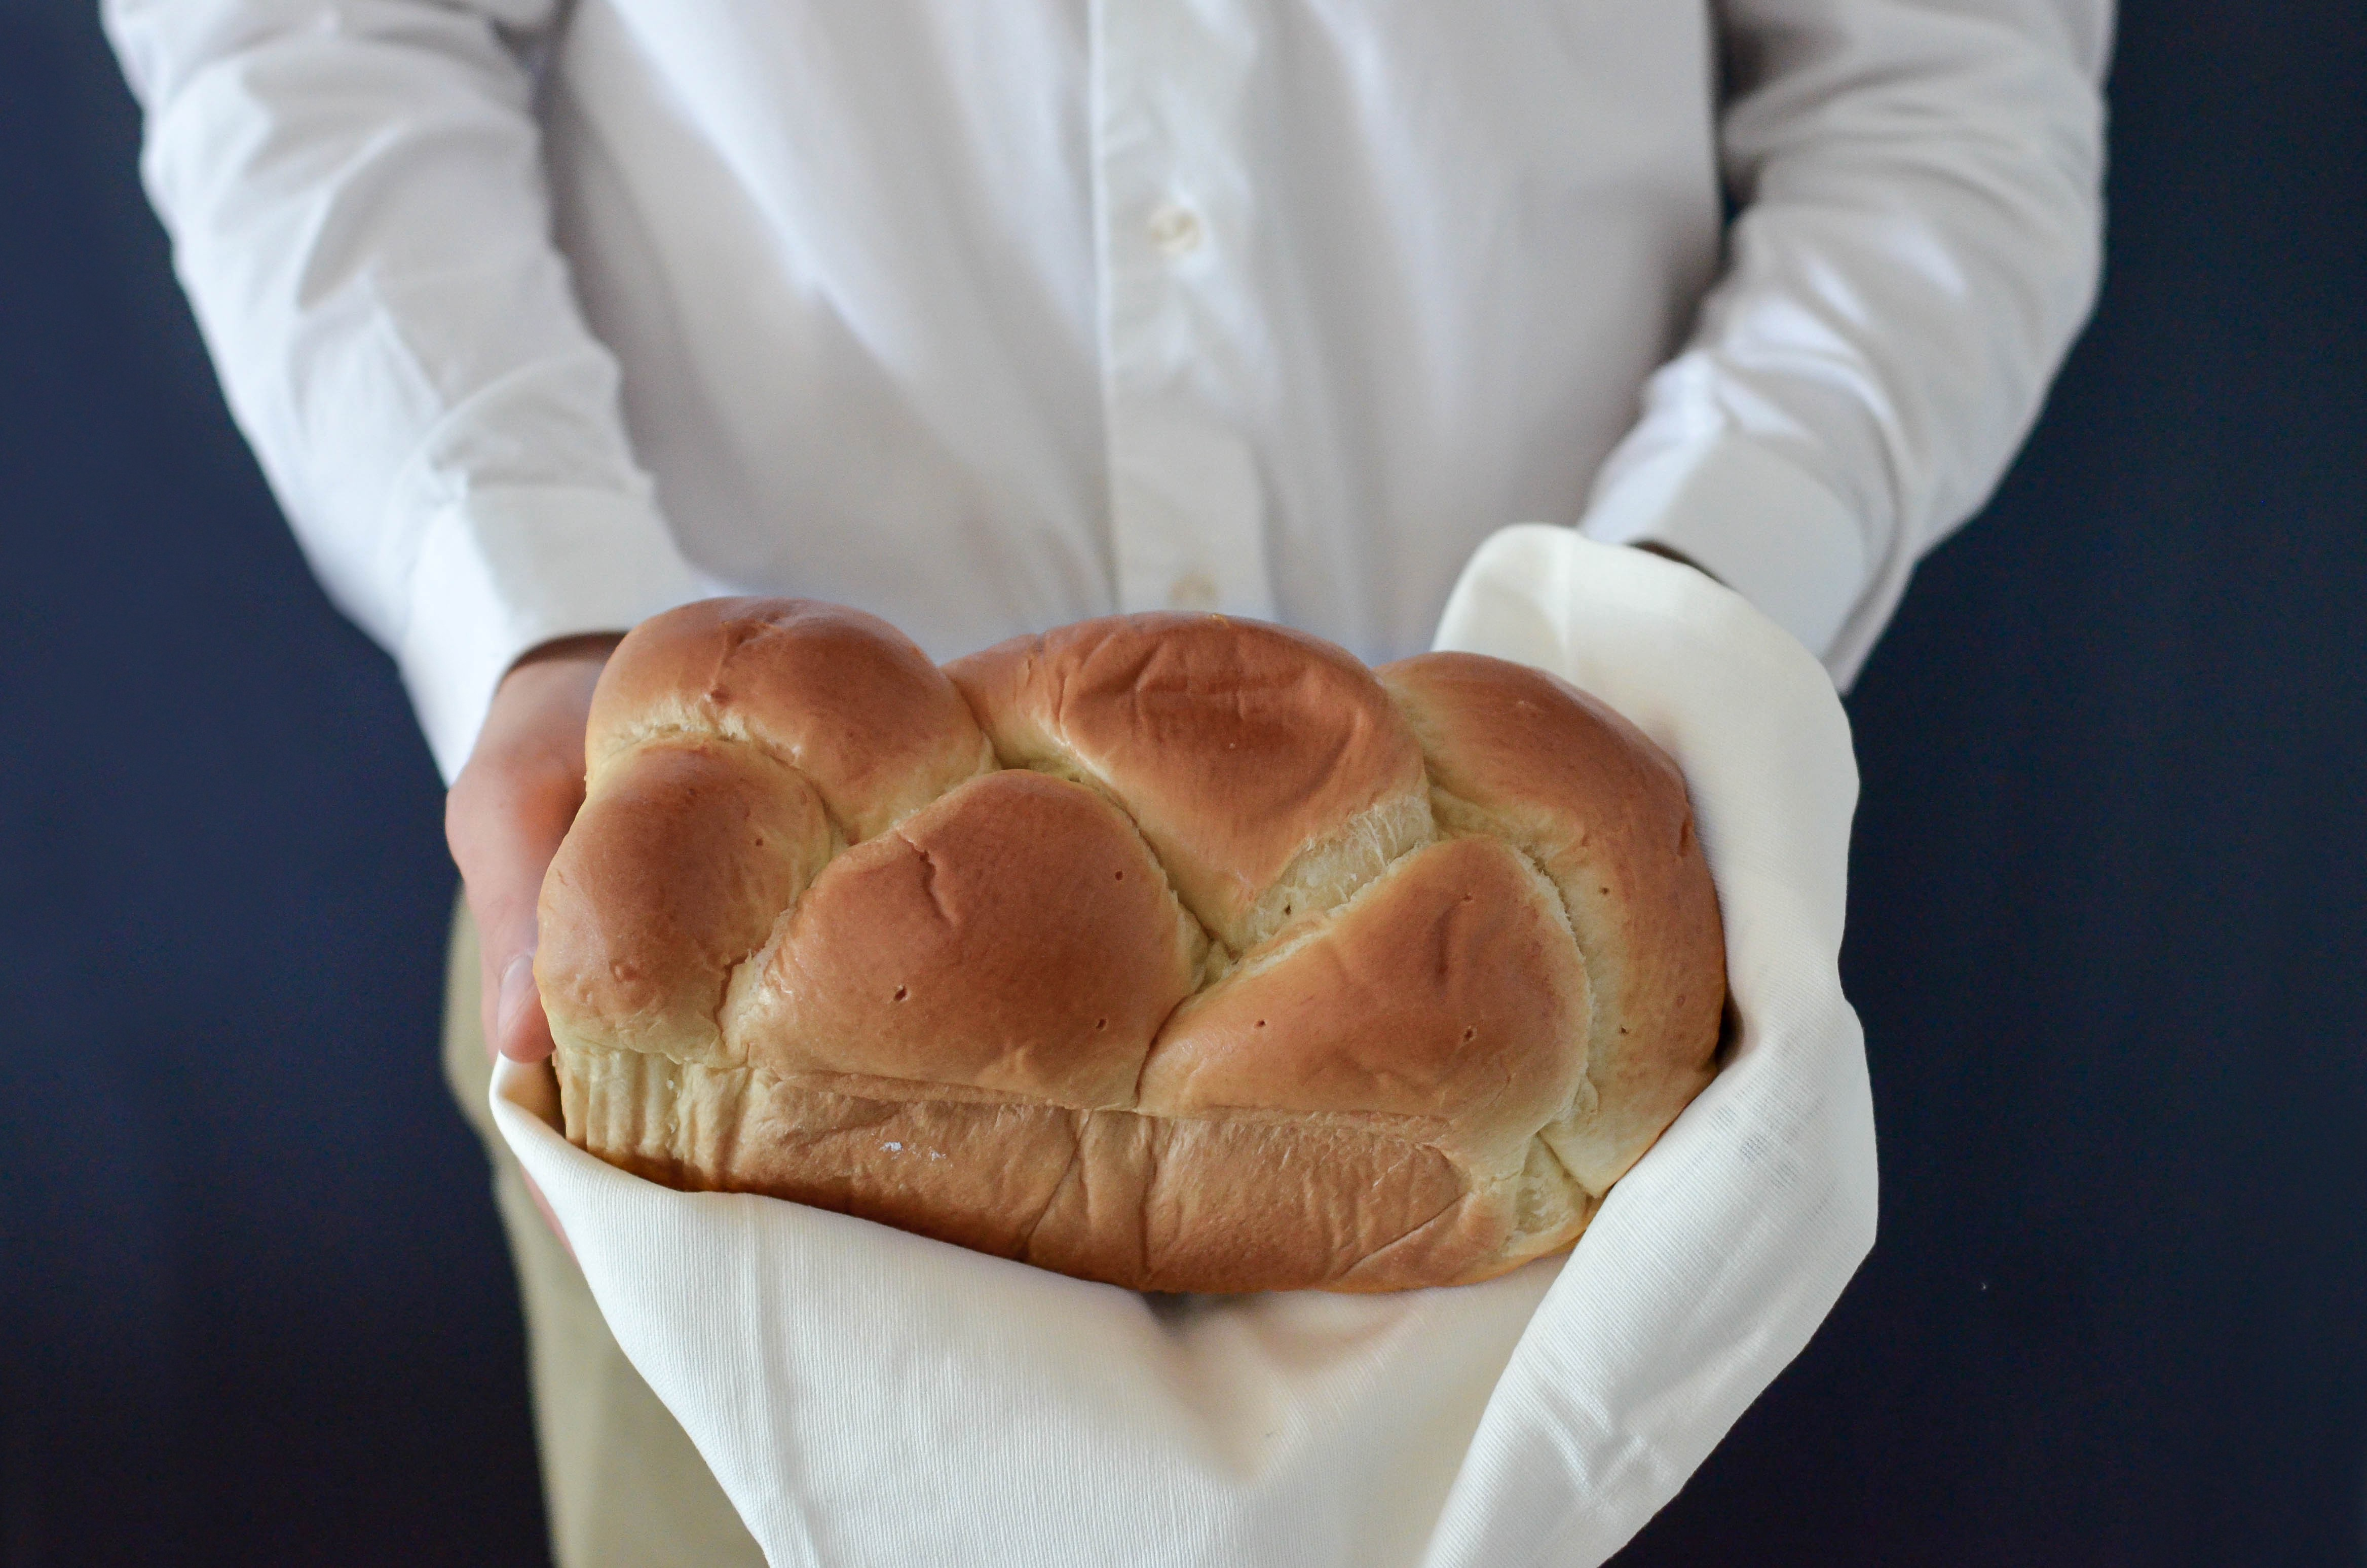 A female's hand holding a pan of fresh golden bread rolls. #Food, #Memories